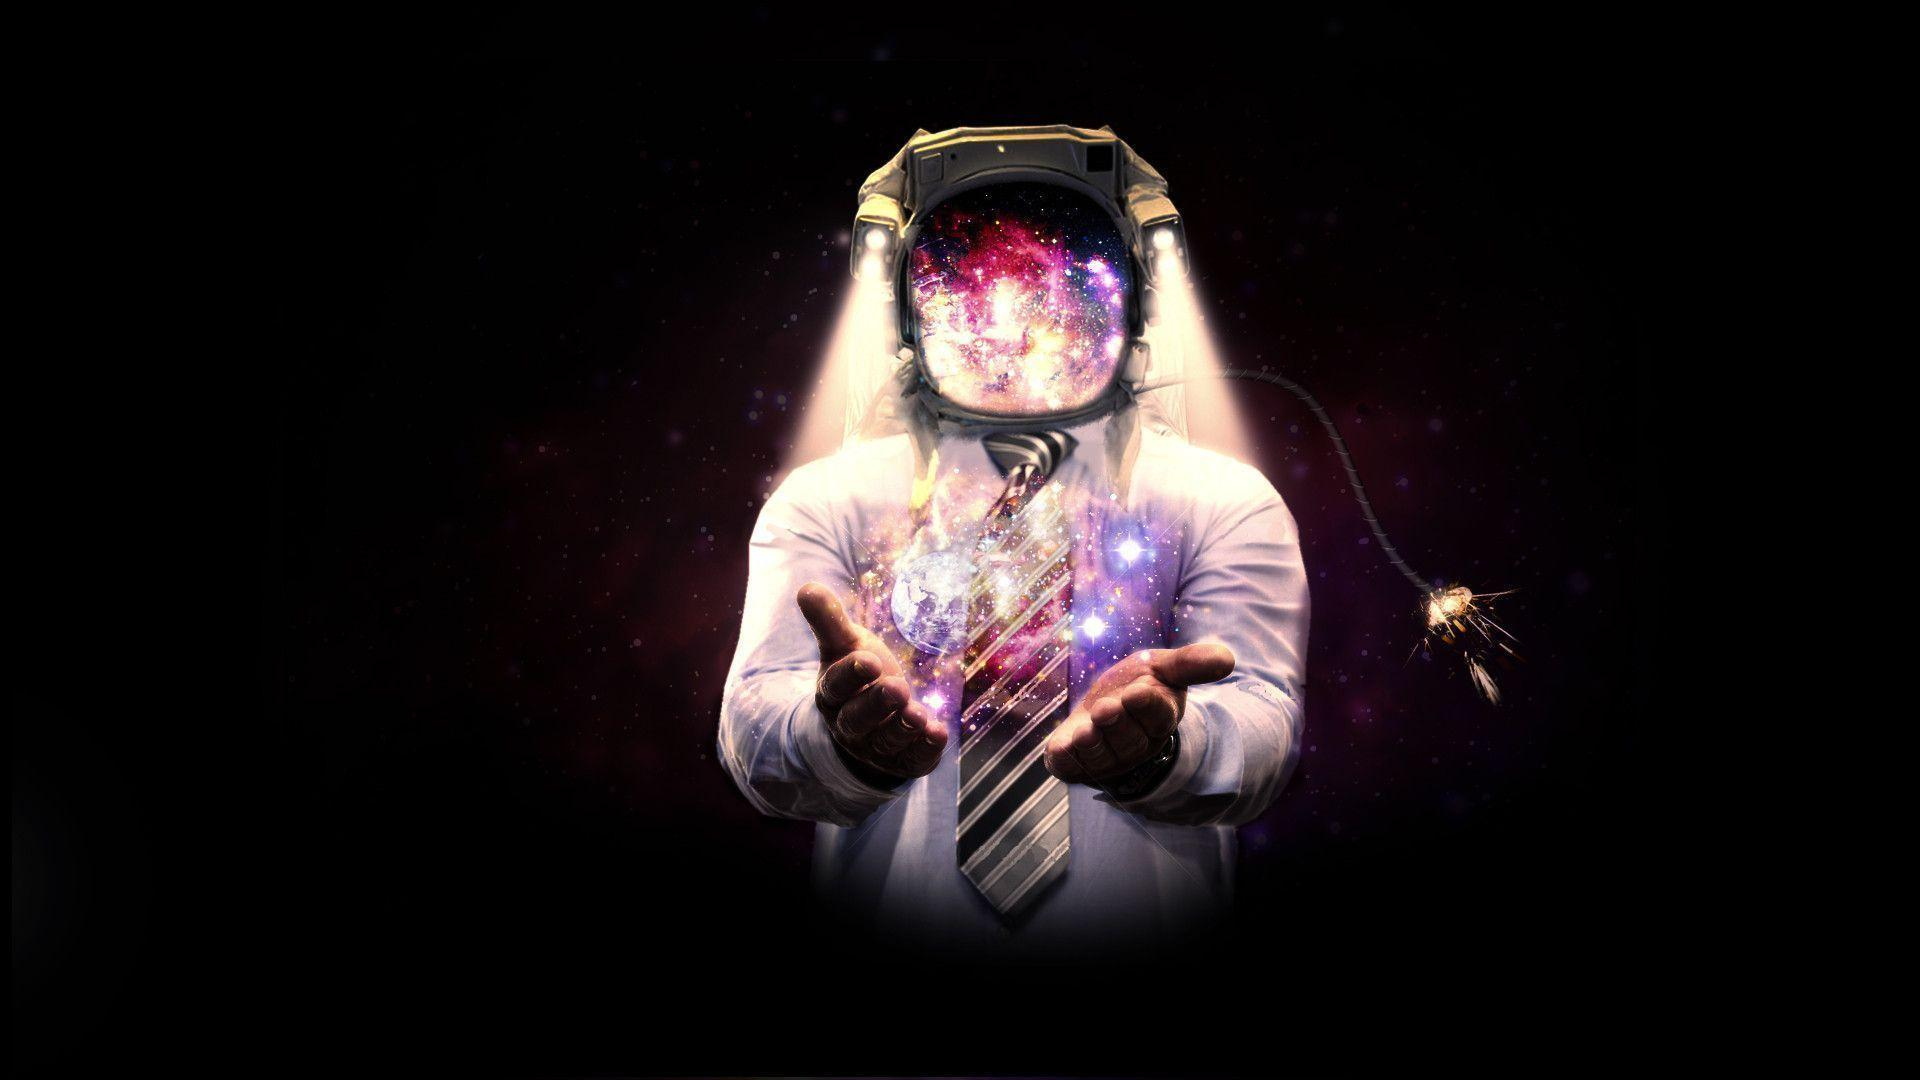 wallpapers trippy astronaut surfer - photo #15